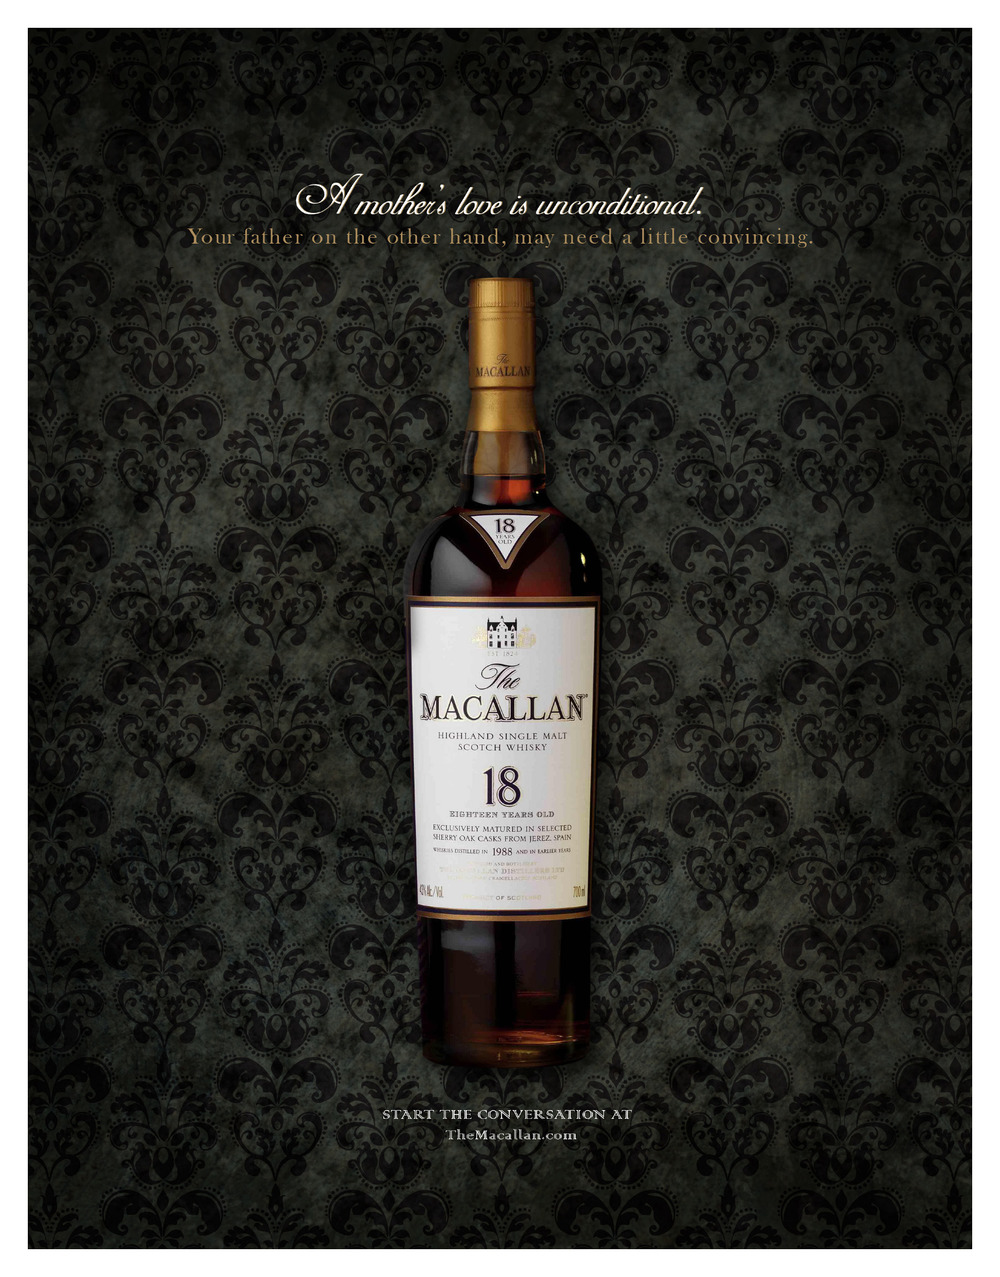 Macallan 1 - Mother-s Love_o.jpg